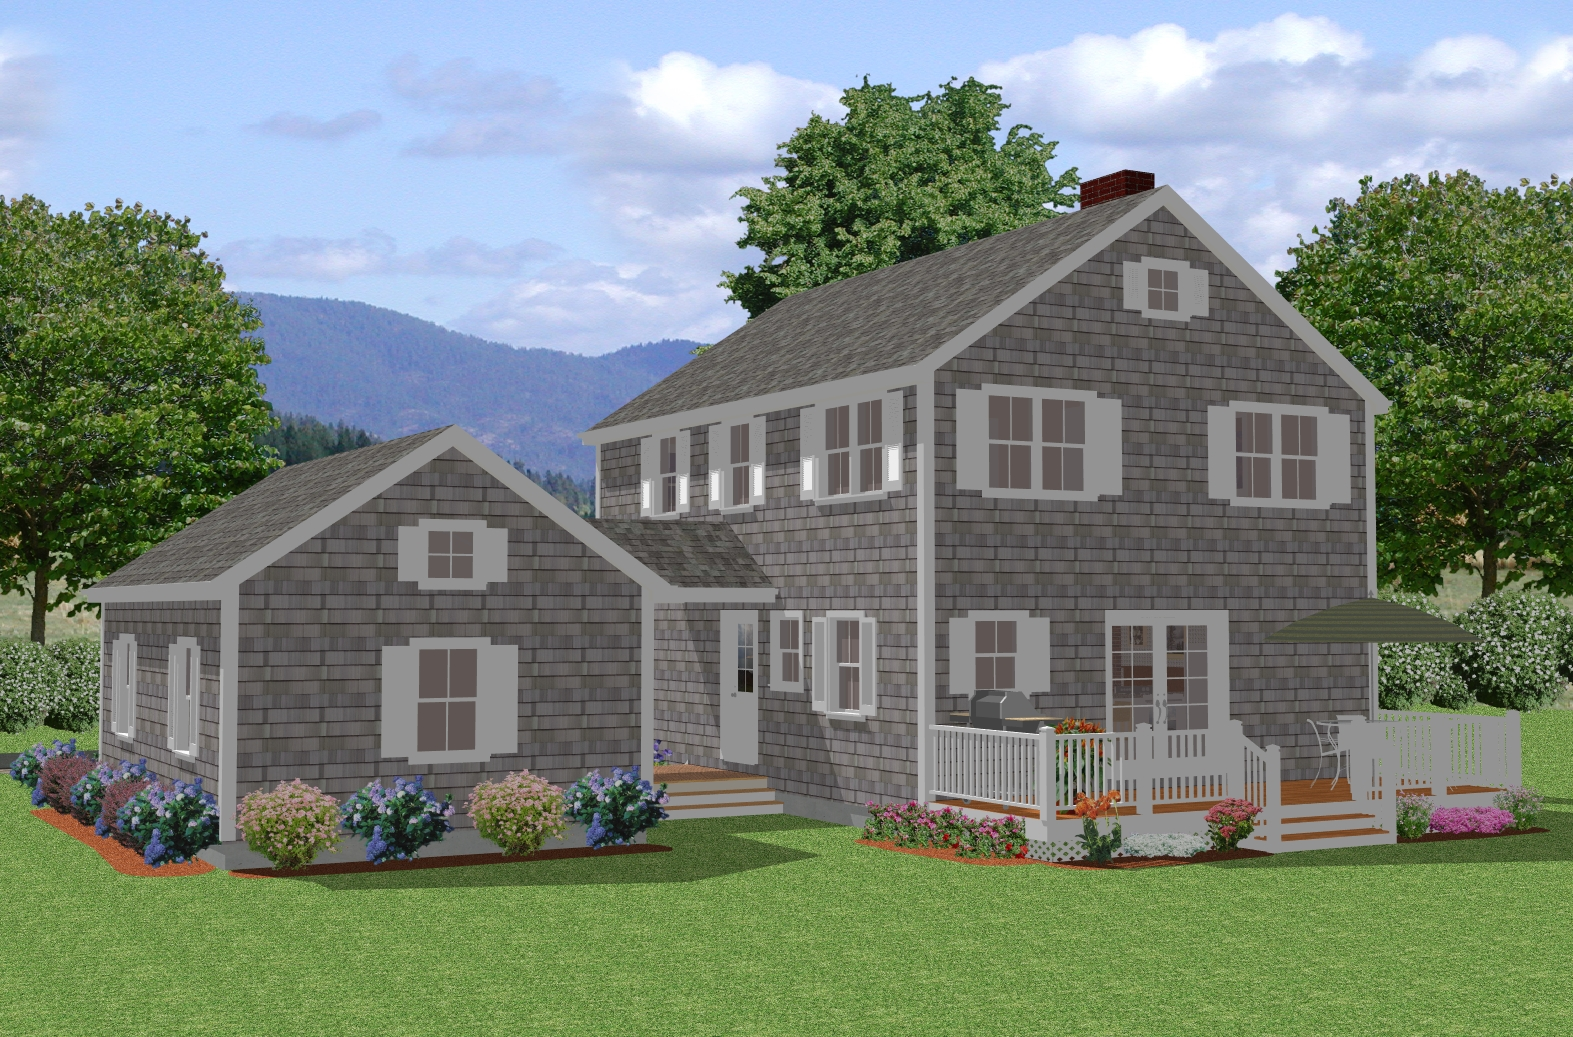 House Plans Traditional House Plans Cape Cod New England House Plans